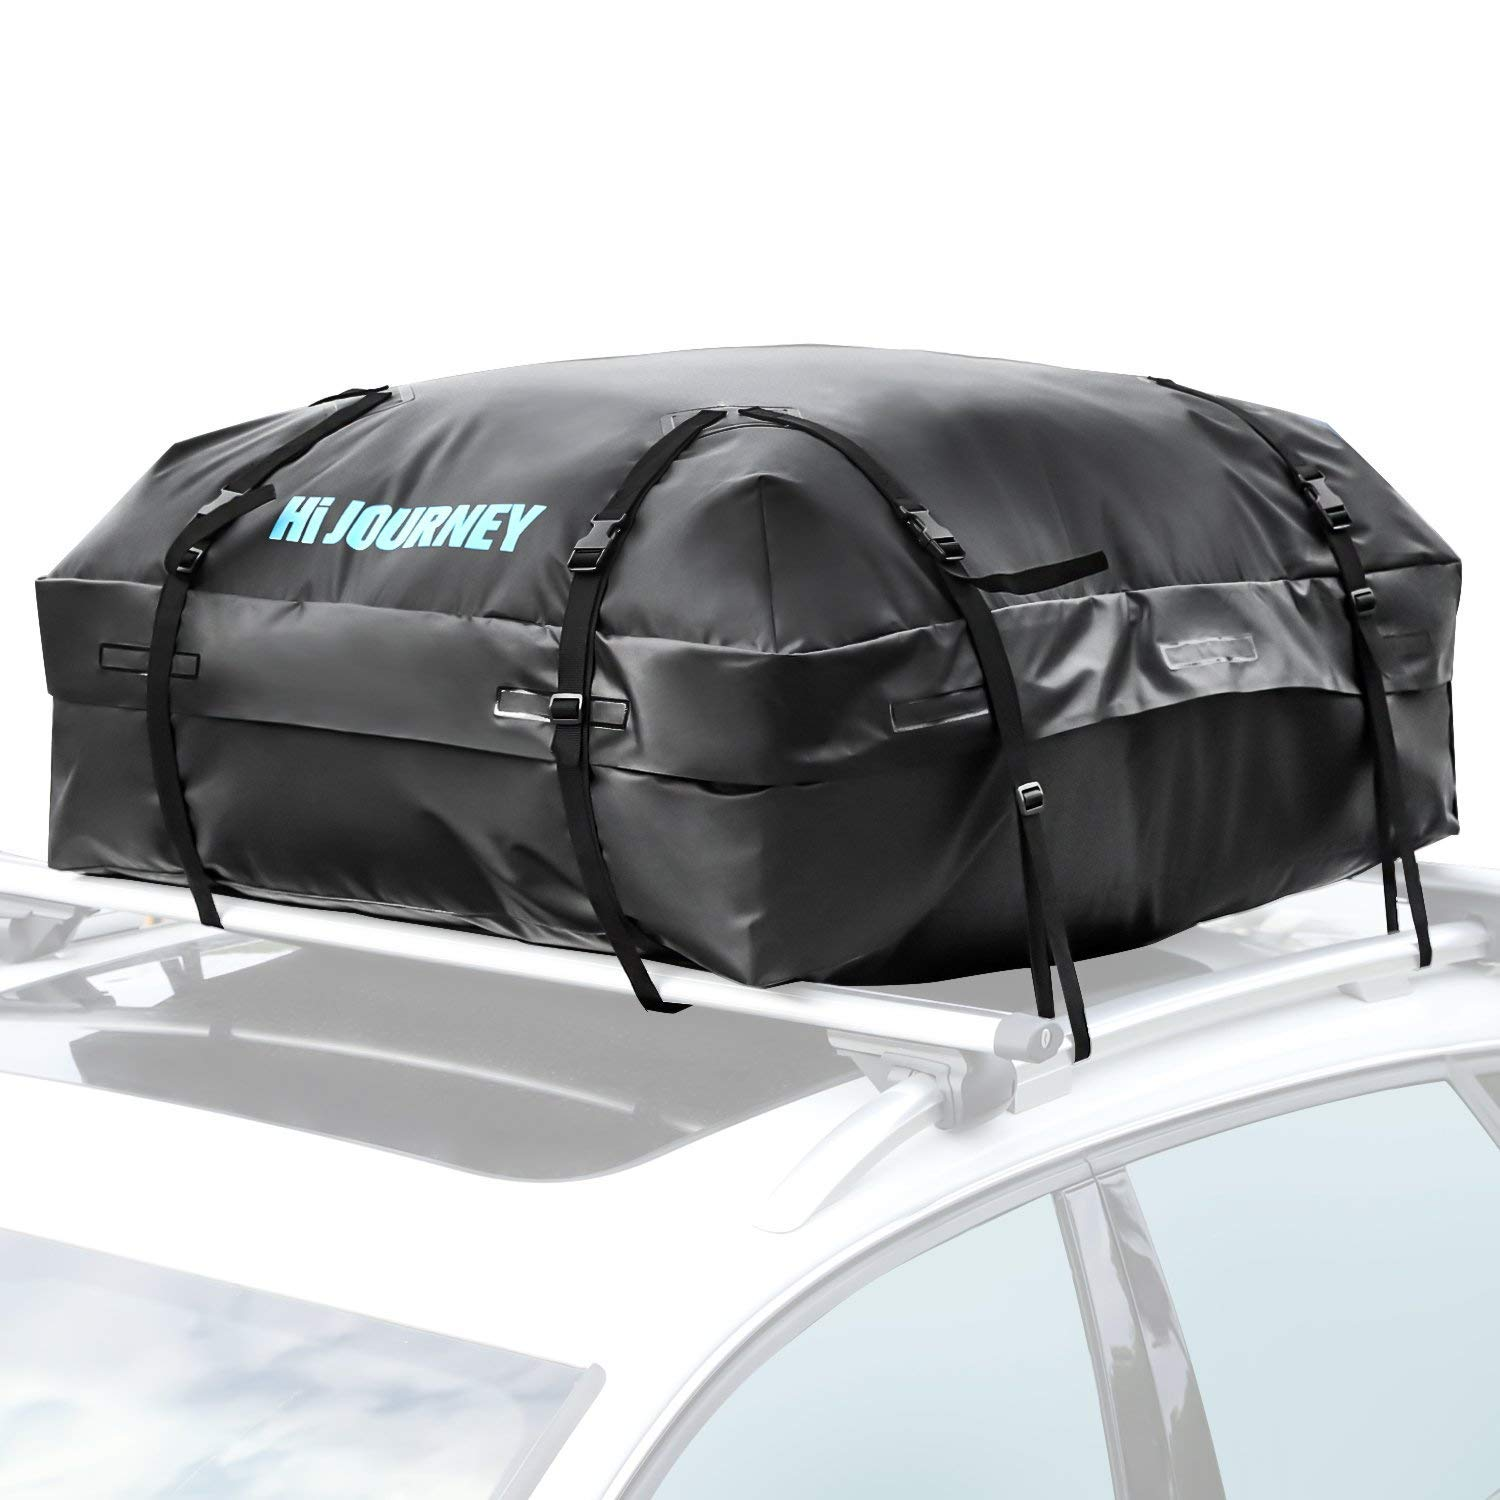 RABBITGOO Rooftop Cargo Carrier Car Roof Cargo Bag Easy to Install Straps - Waterproof Soft Shell Luggage Rack Bag on Car Topper 15 Cubic Feet GLOBEGOU CO. LTD